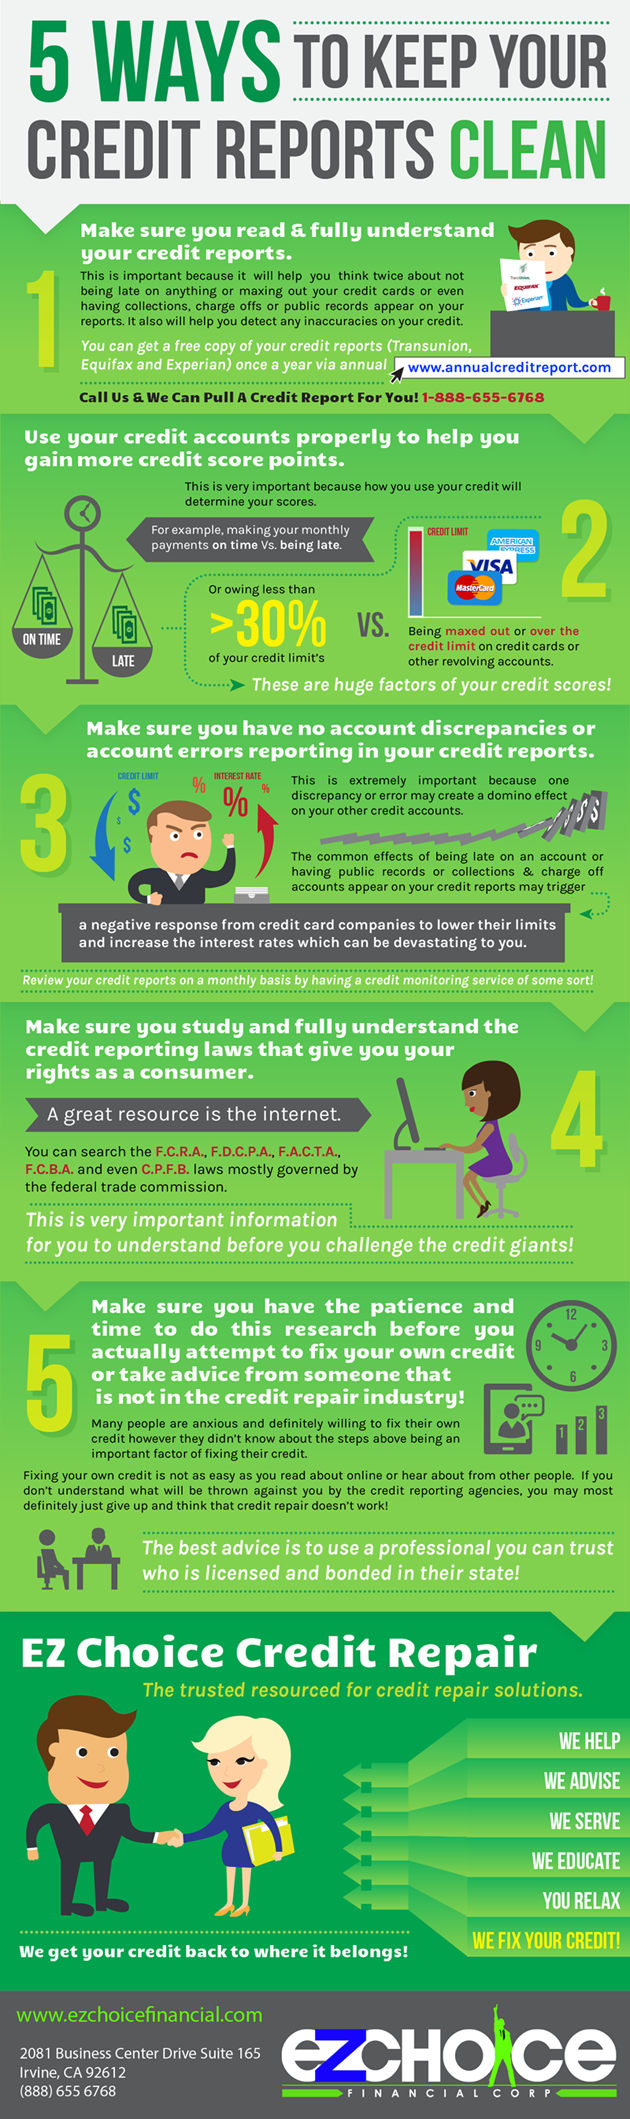 5 Ways To Keep Your Credit Reports Clean